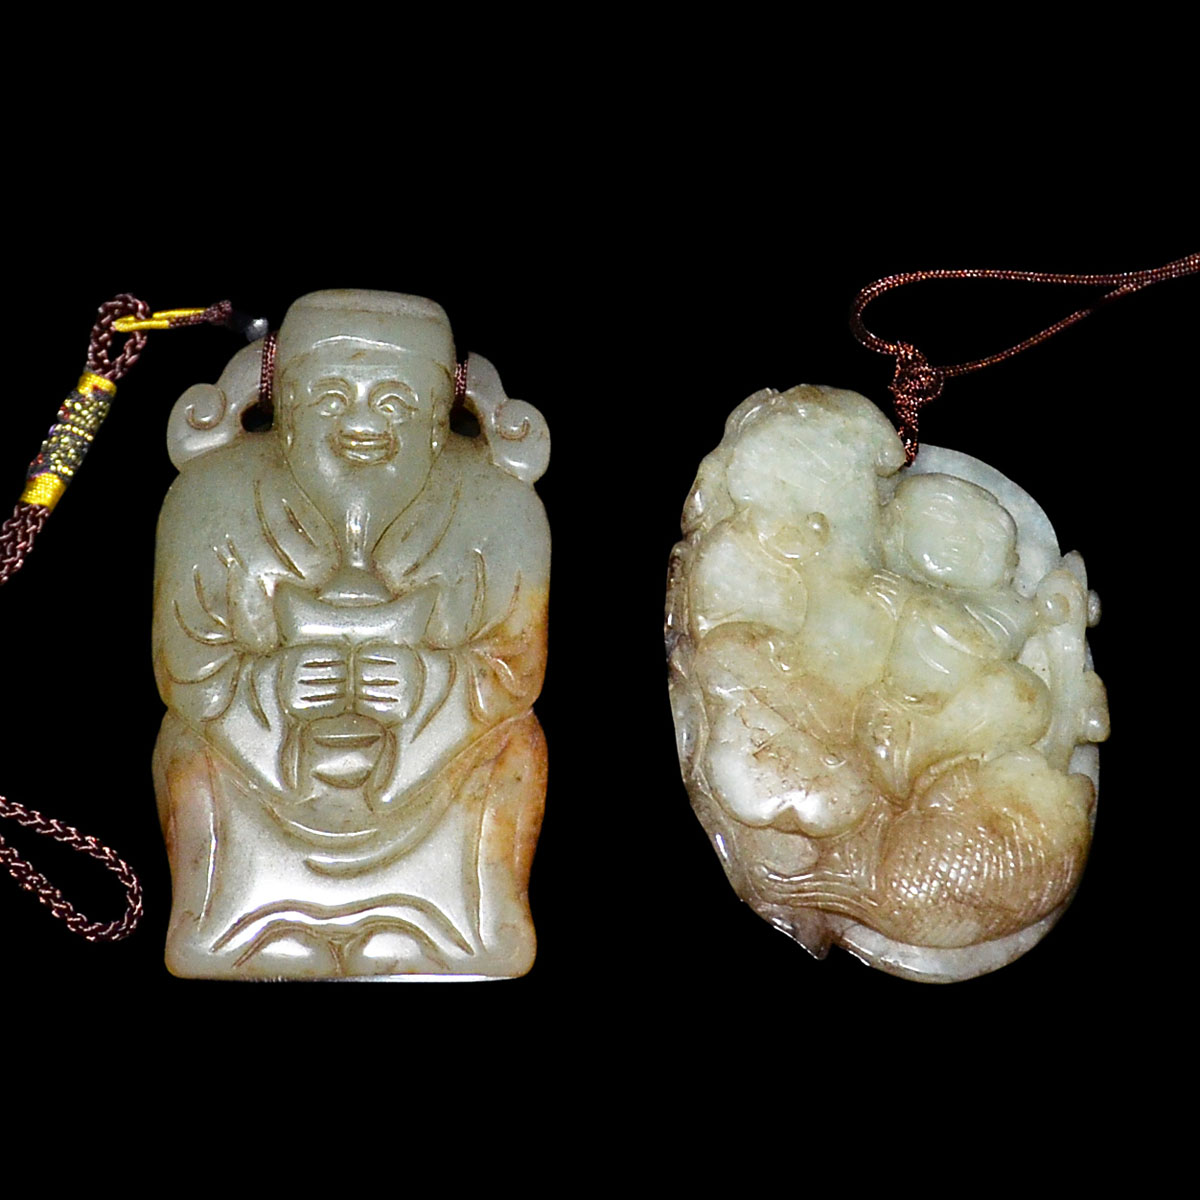 Lot 38 - 玉雕人物把玩一組二件:老子,荷塘嬰戲鲤魚 Two Carved Jade Pebbles: Scholar with Tablet and Lotus Pond Child with Carp.